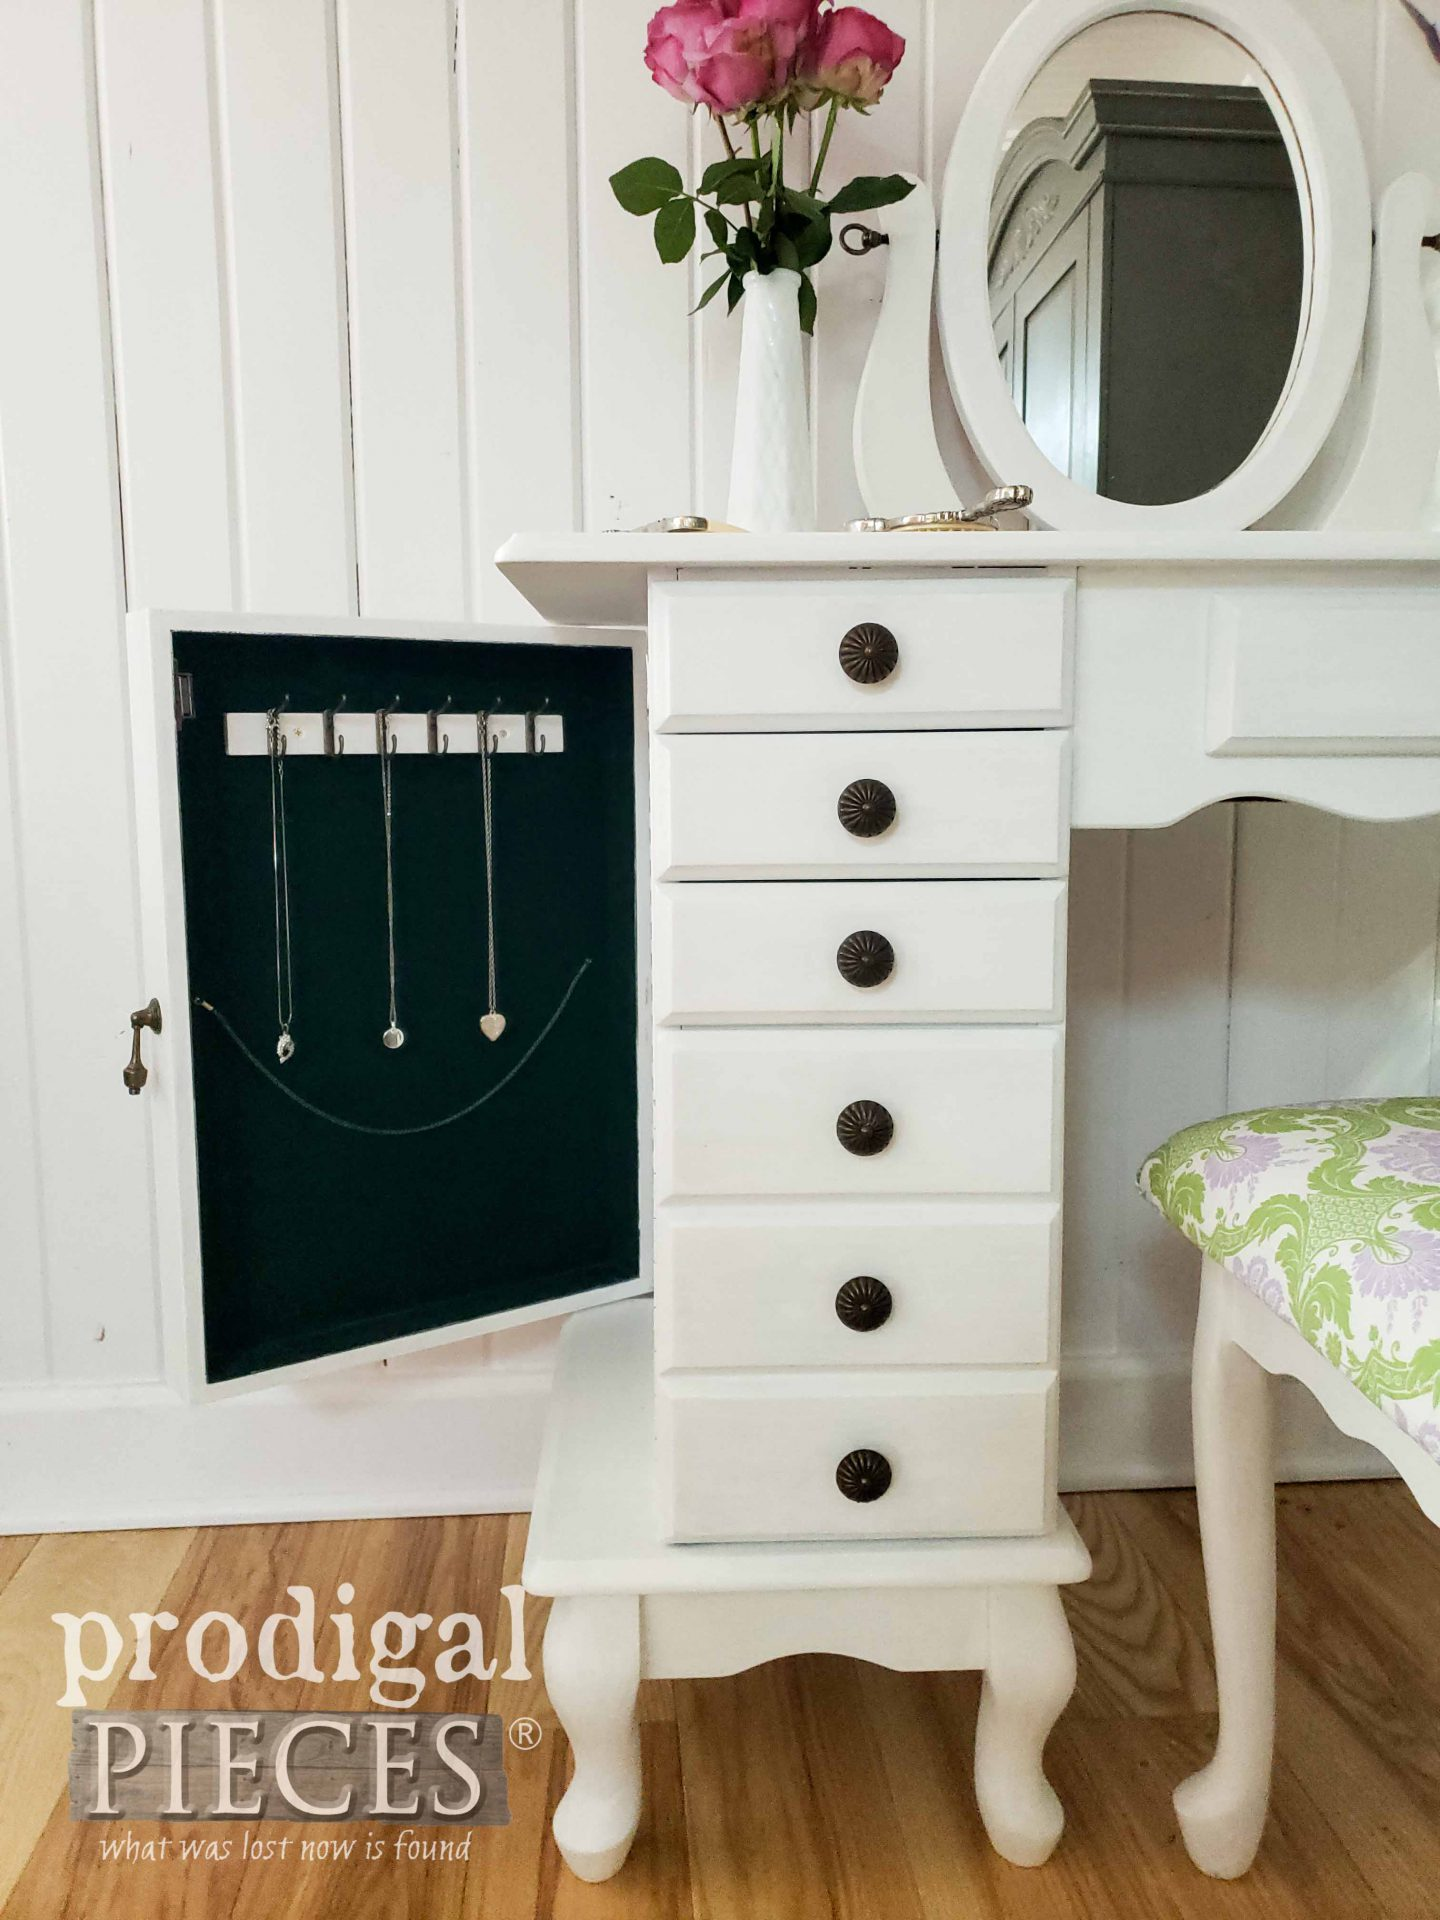 Vintage Girls Vanity in White with Jewelry Storage by Prodigal Pieces | prodigalpieces.com #prodigalpieces #diy #home #girls #homedecor #bedroom